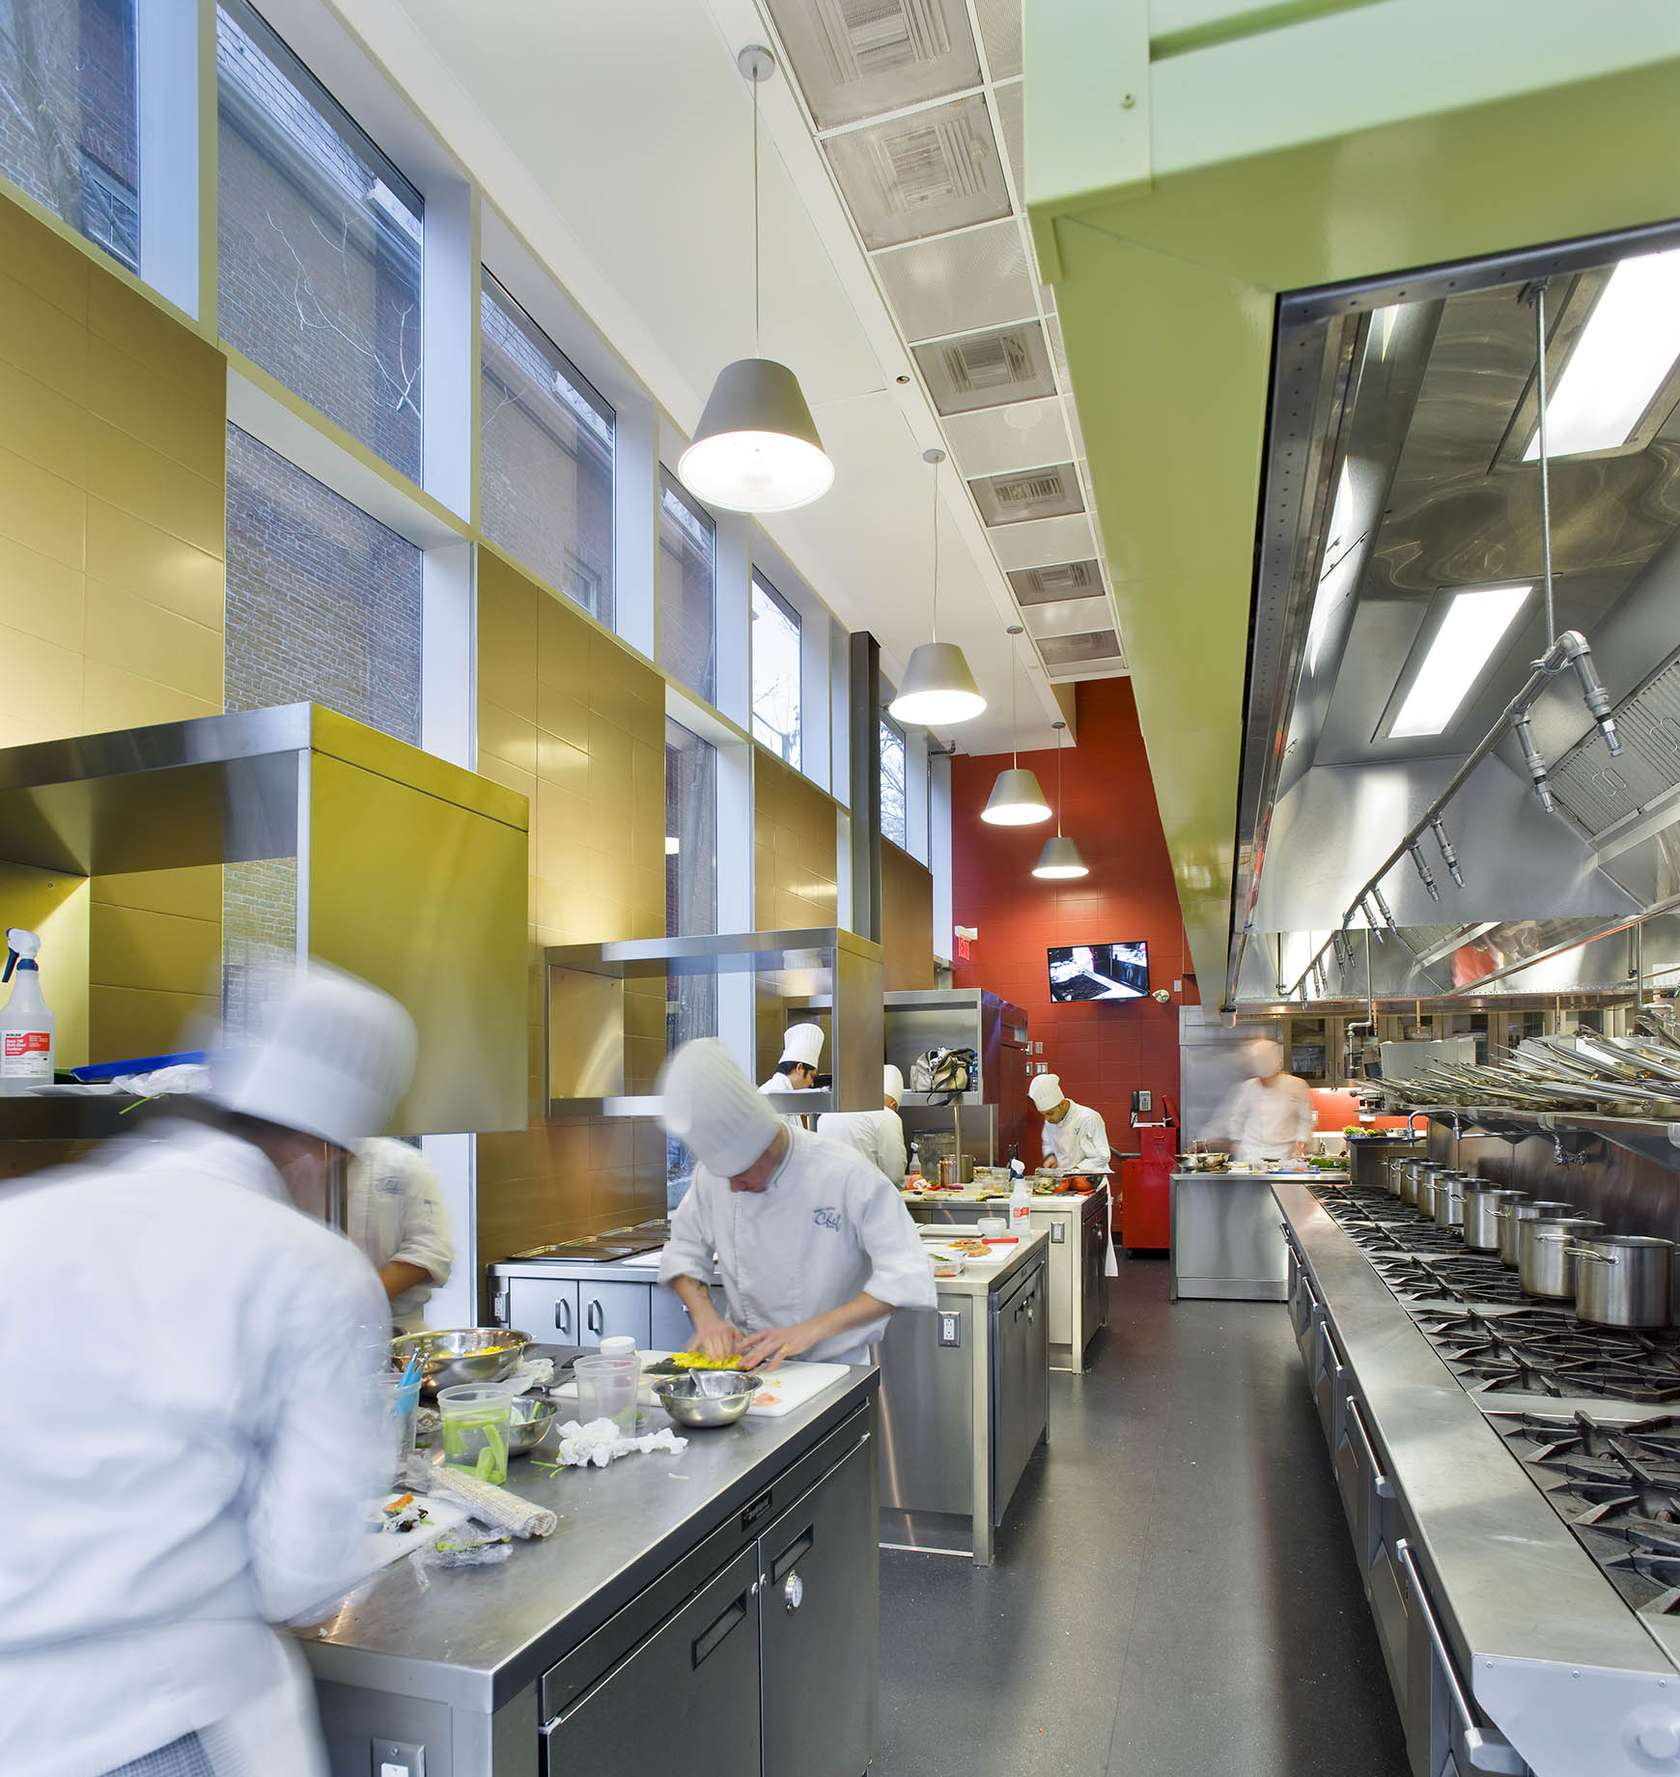 Centre for hospitality and culinary arts architizer - Kitchen design school ...